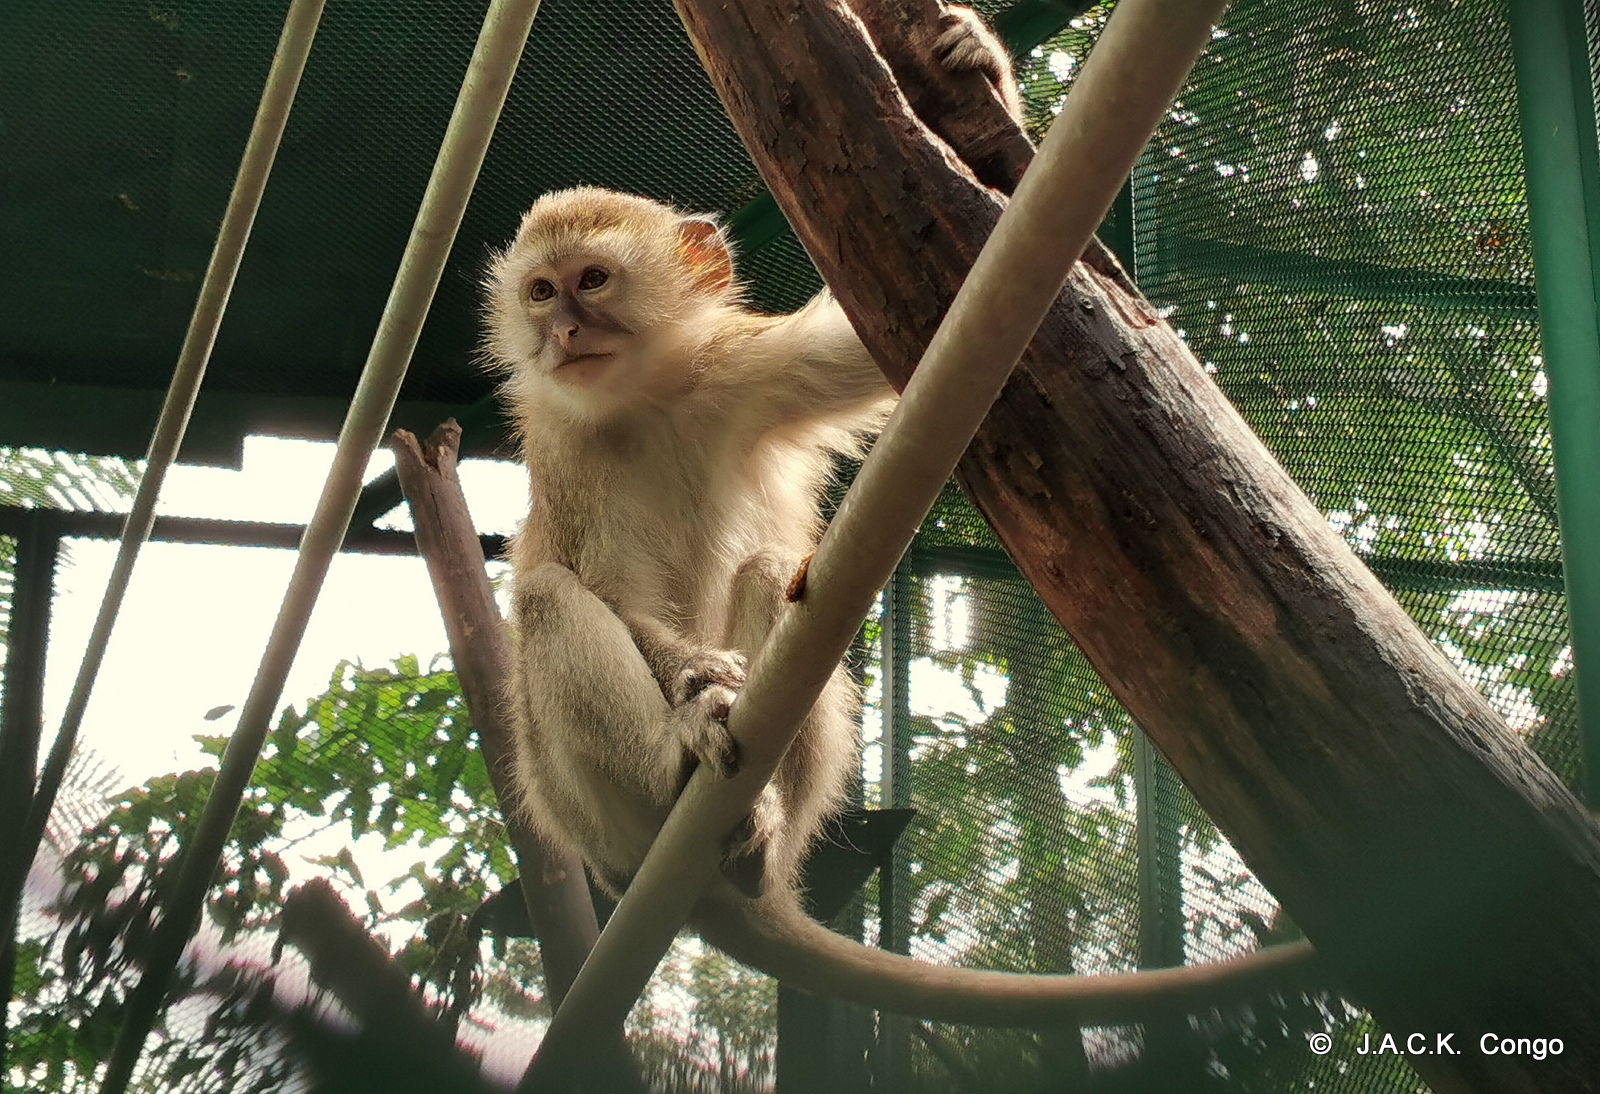 The rescued vervets are enjoyng their new life